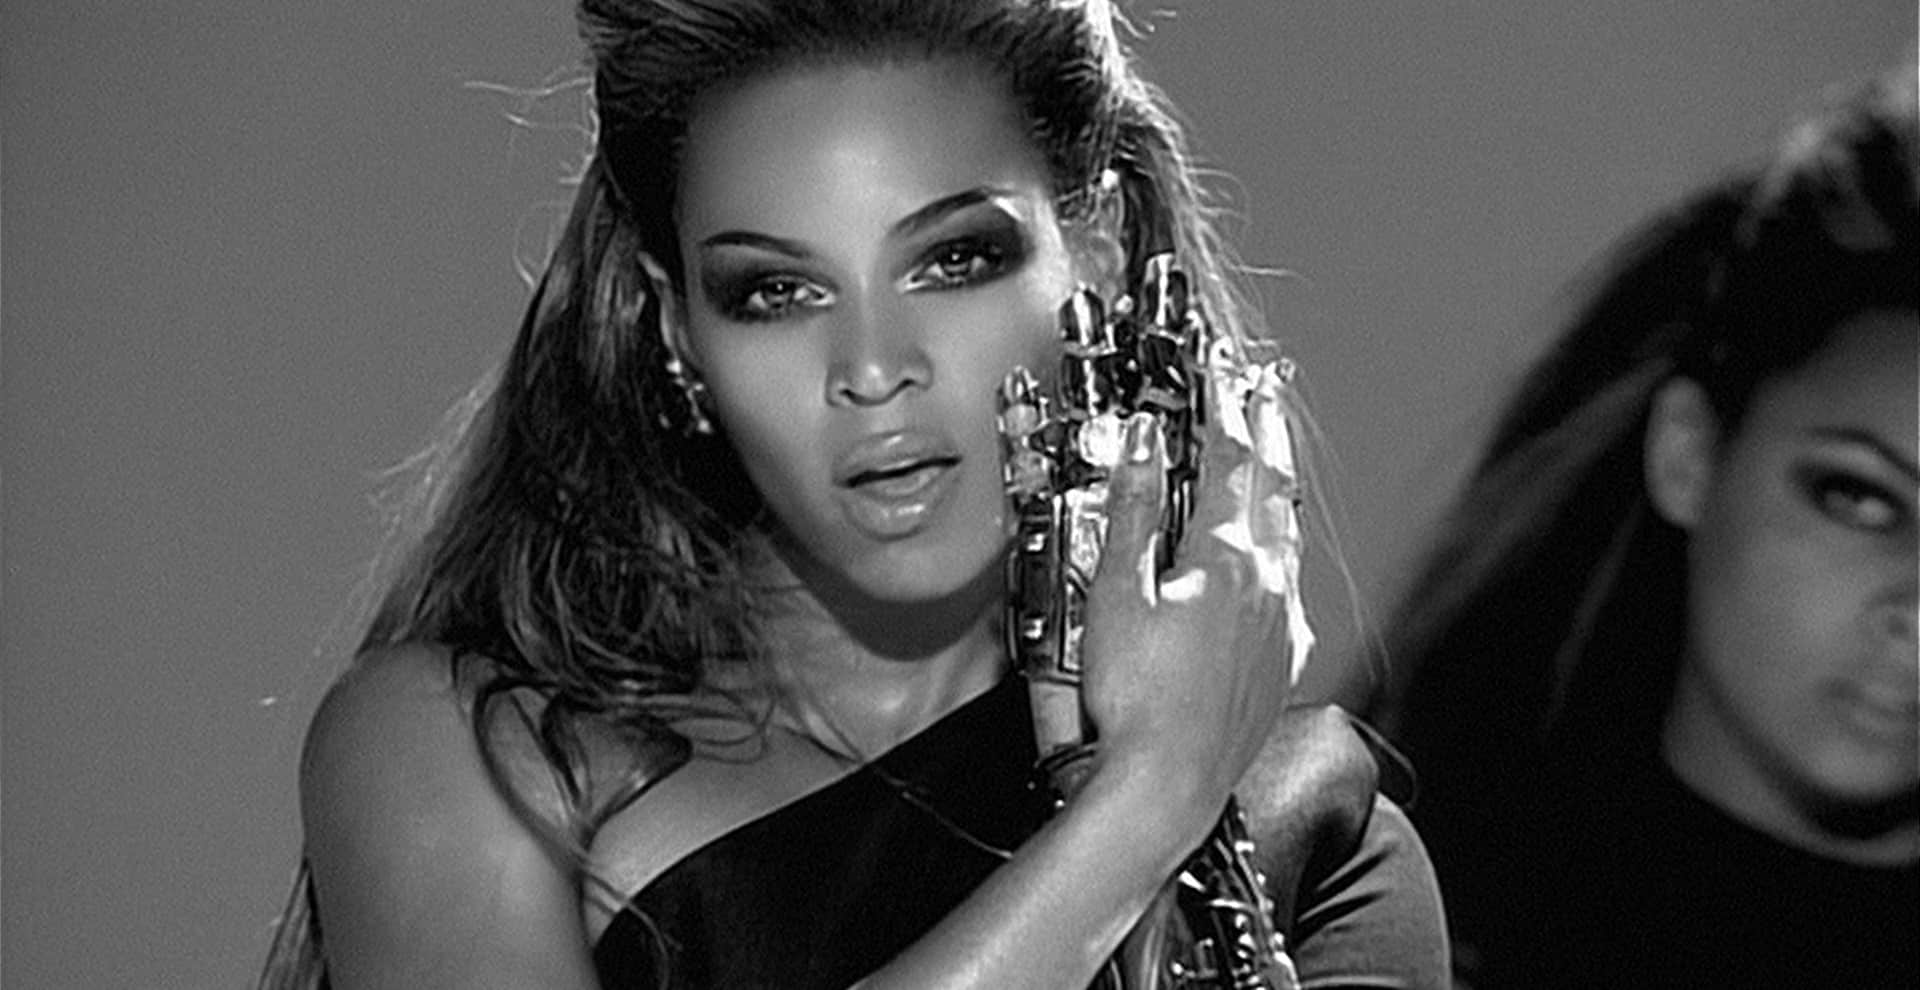 Branding Strategies - How to Build a Brand like Beyonce